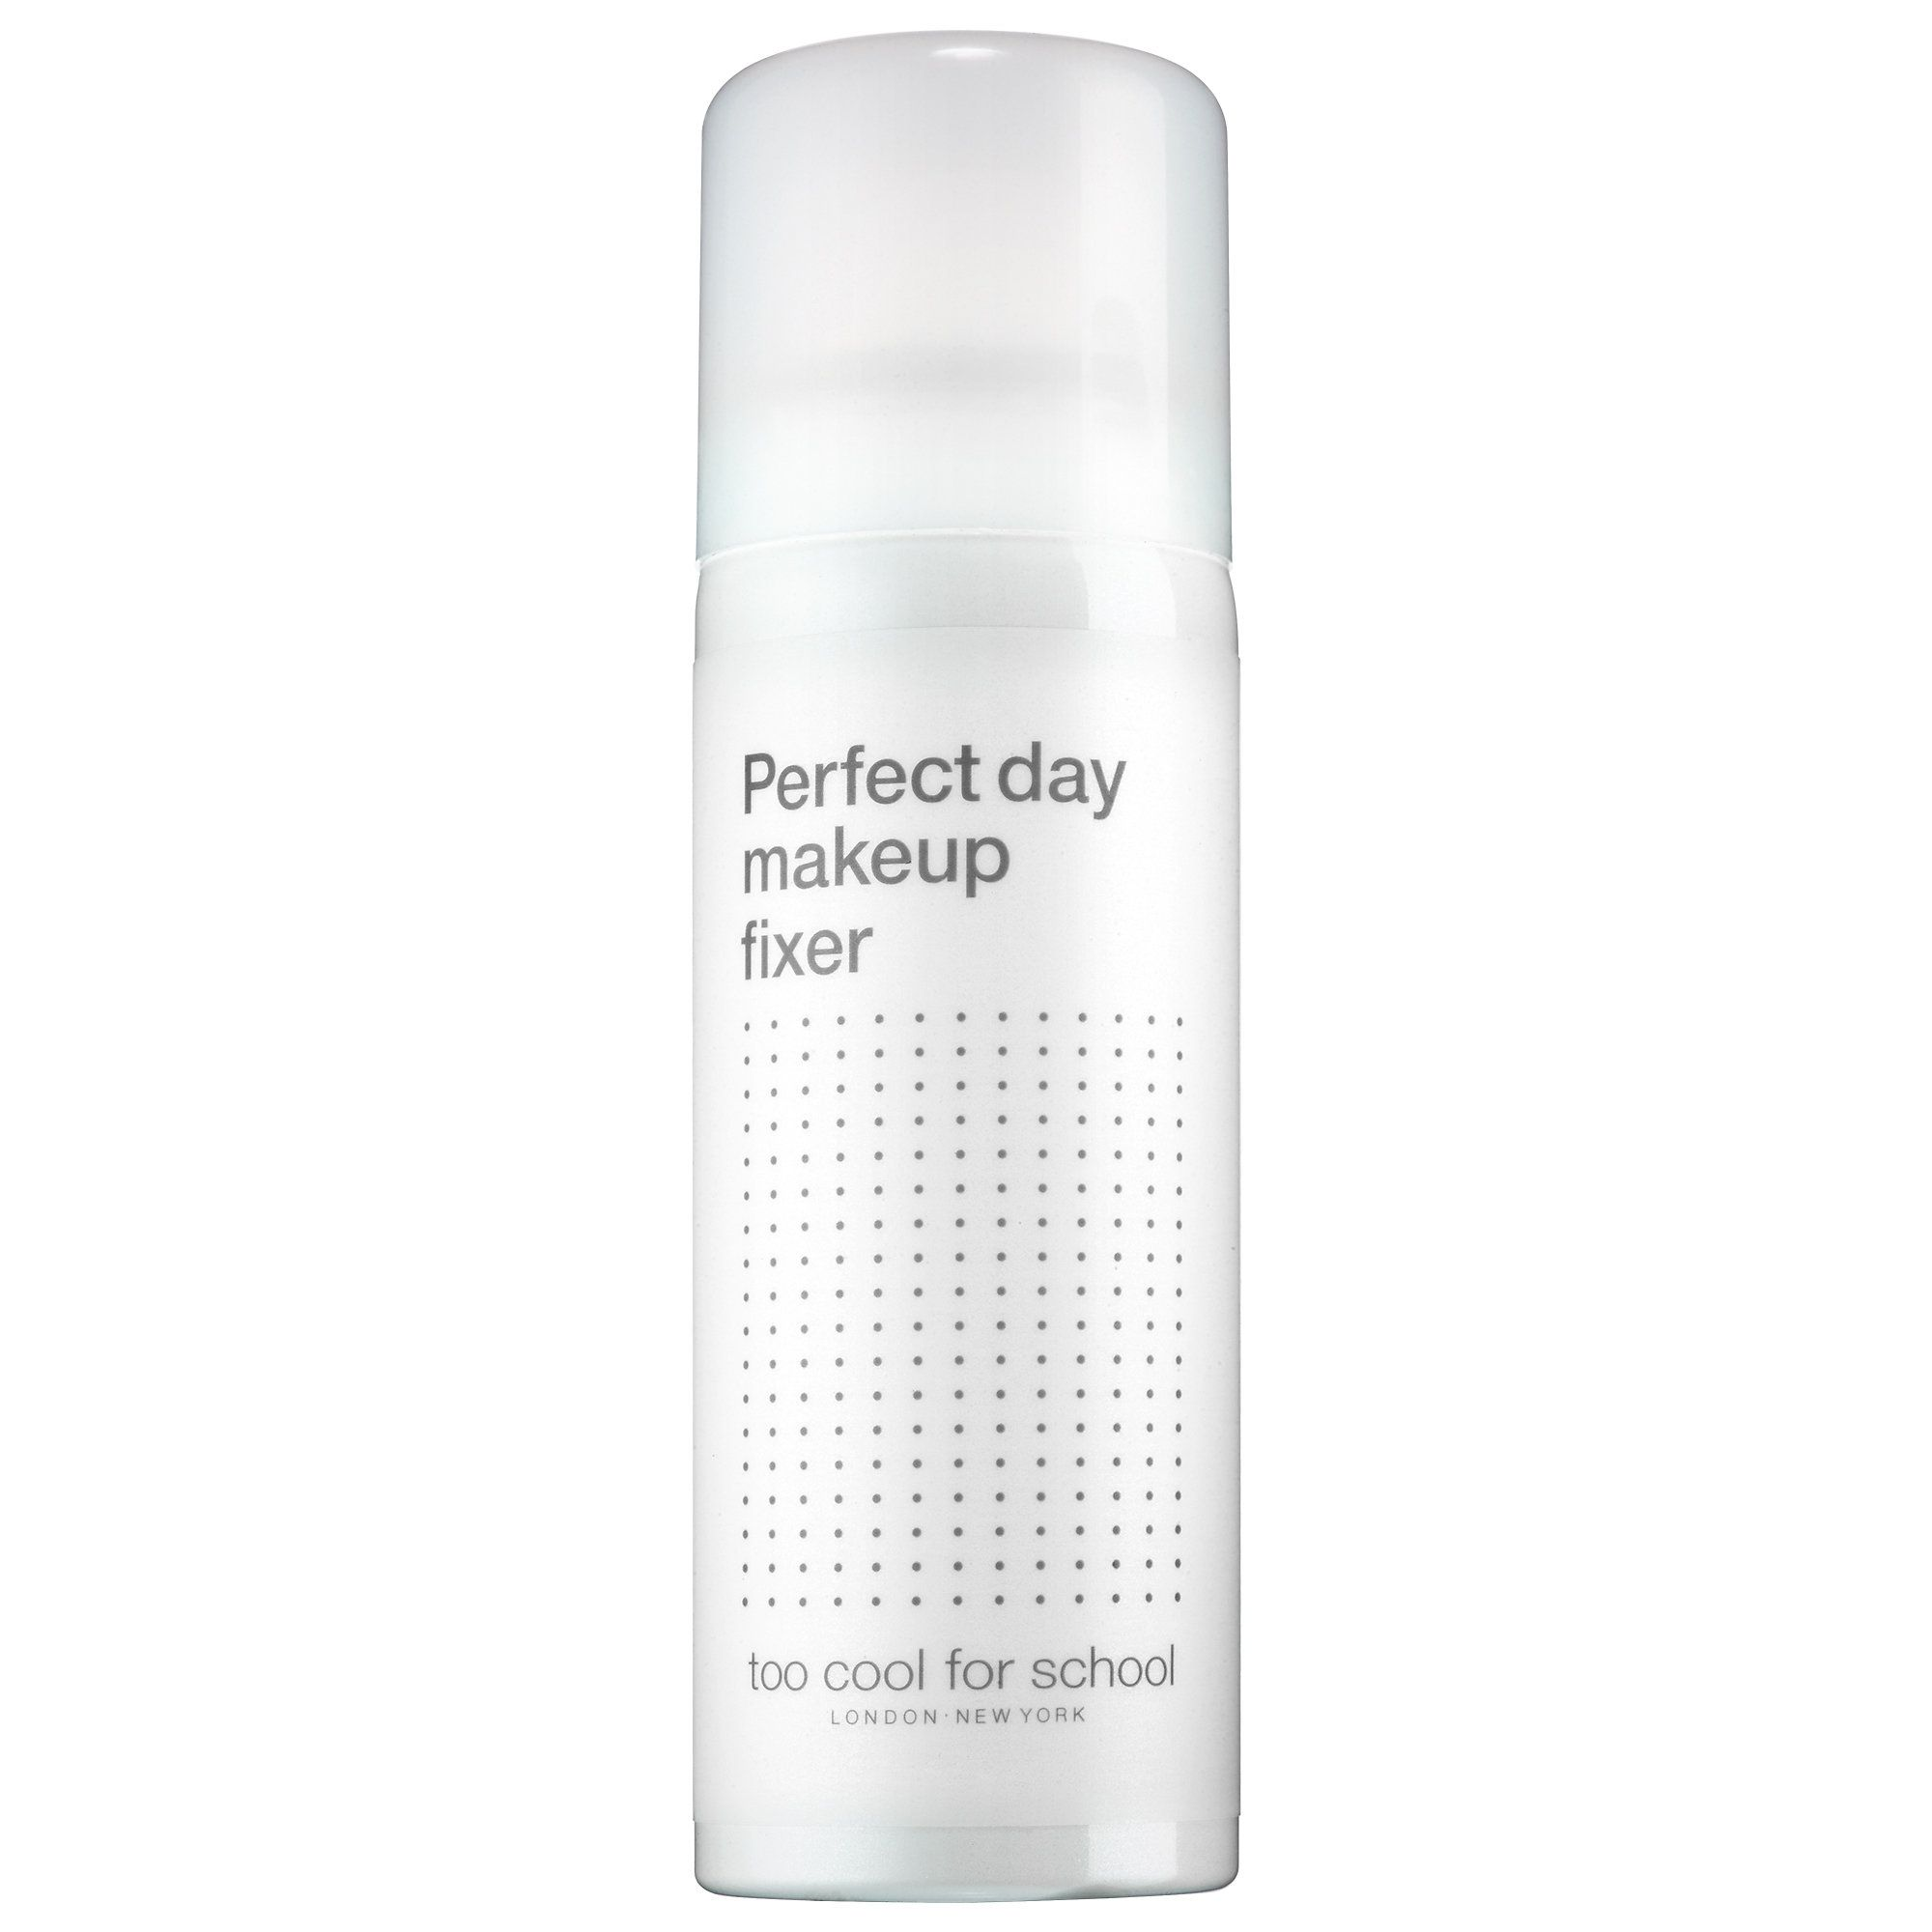 Shop Too Cool For School's Perfect Day Makeup Fixer Spray